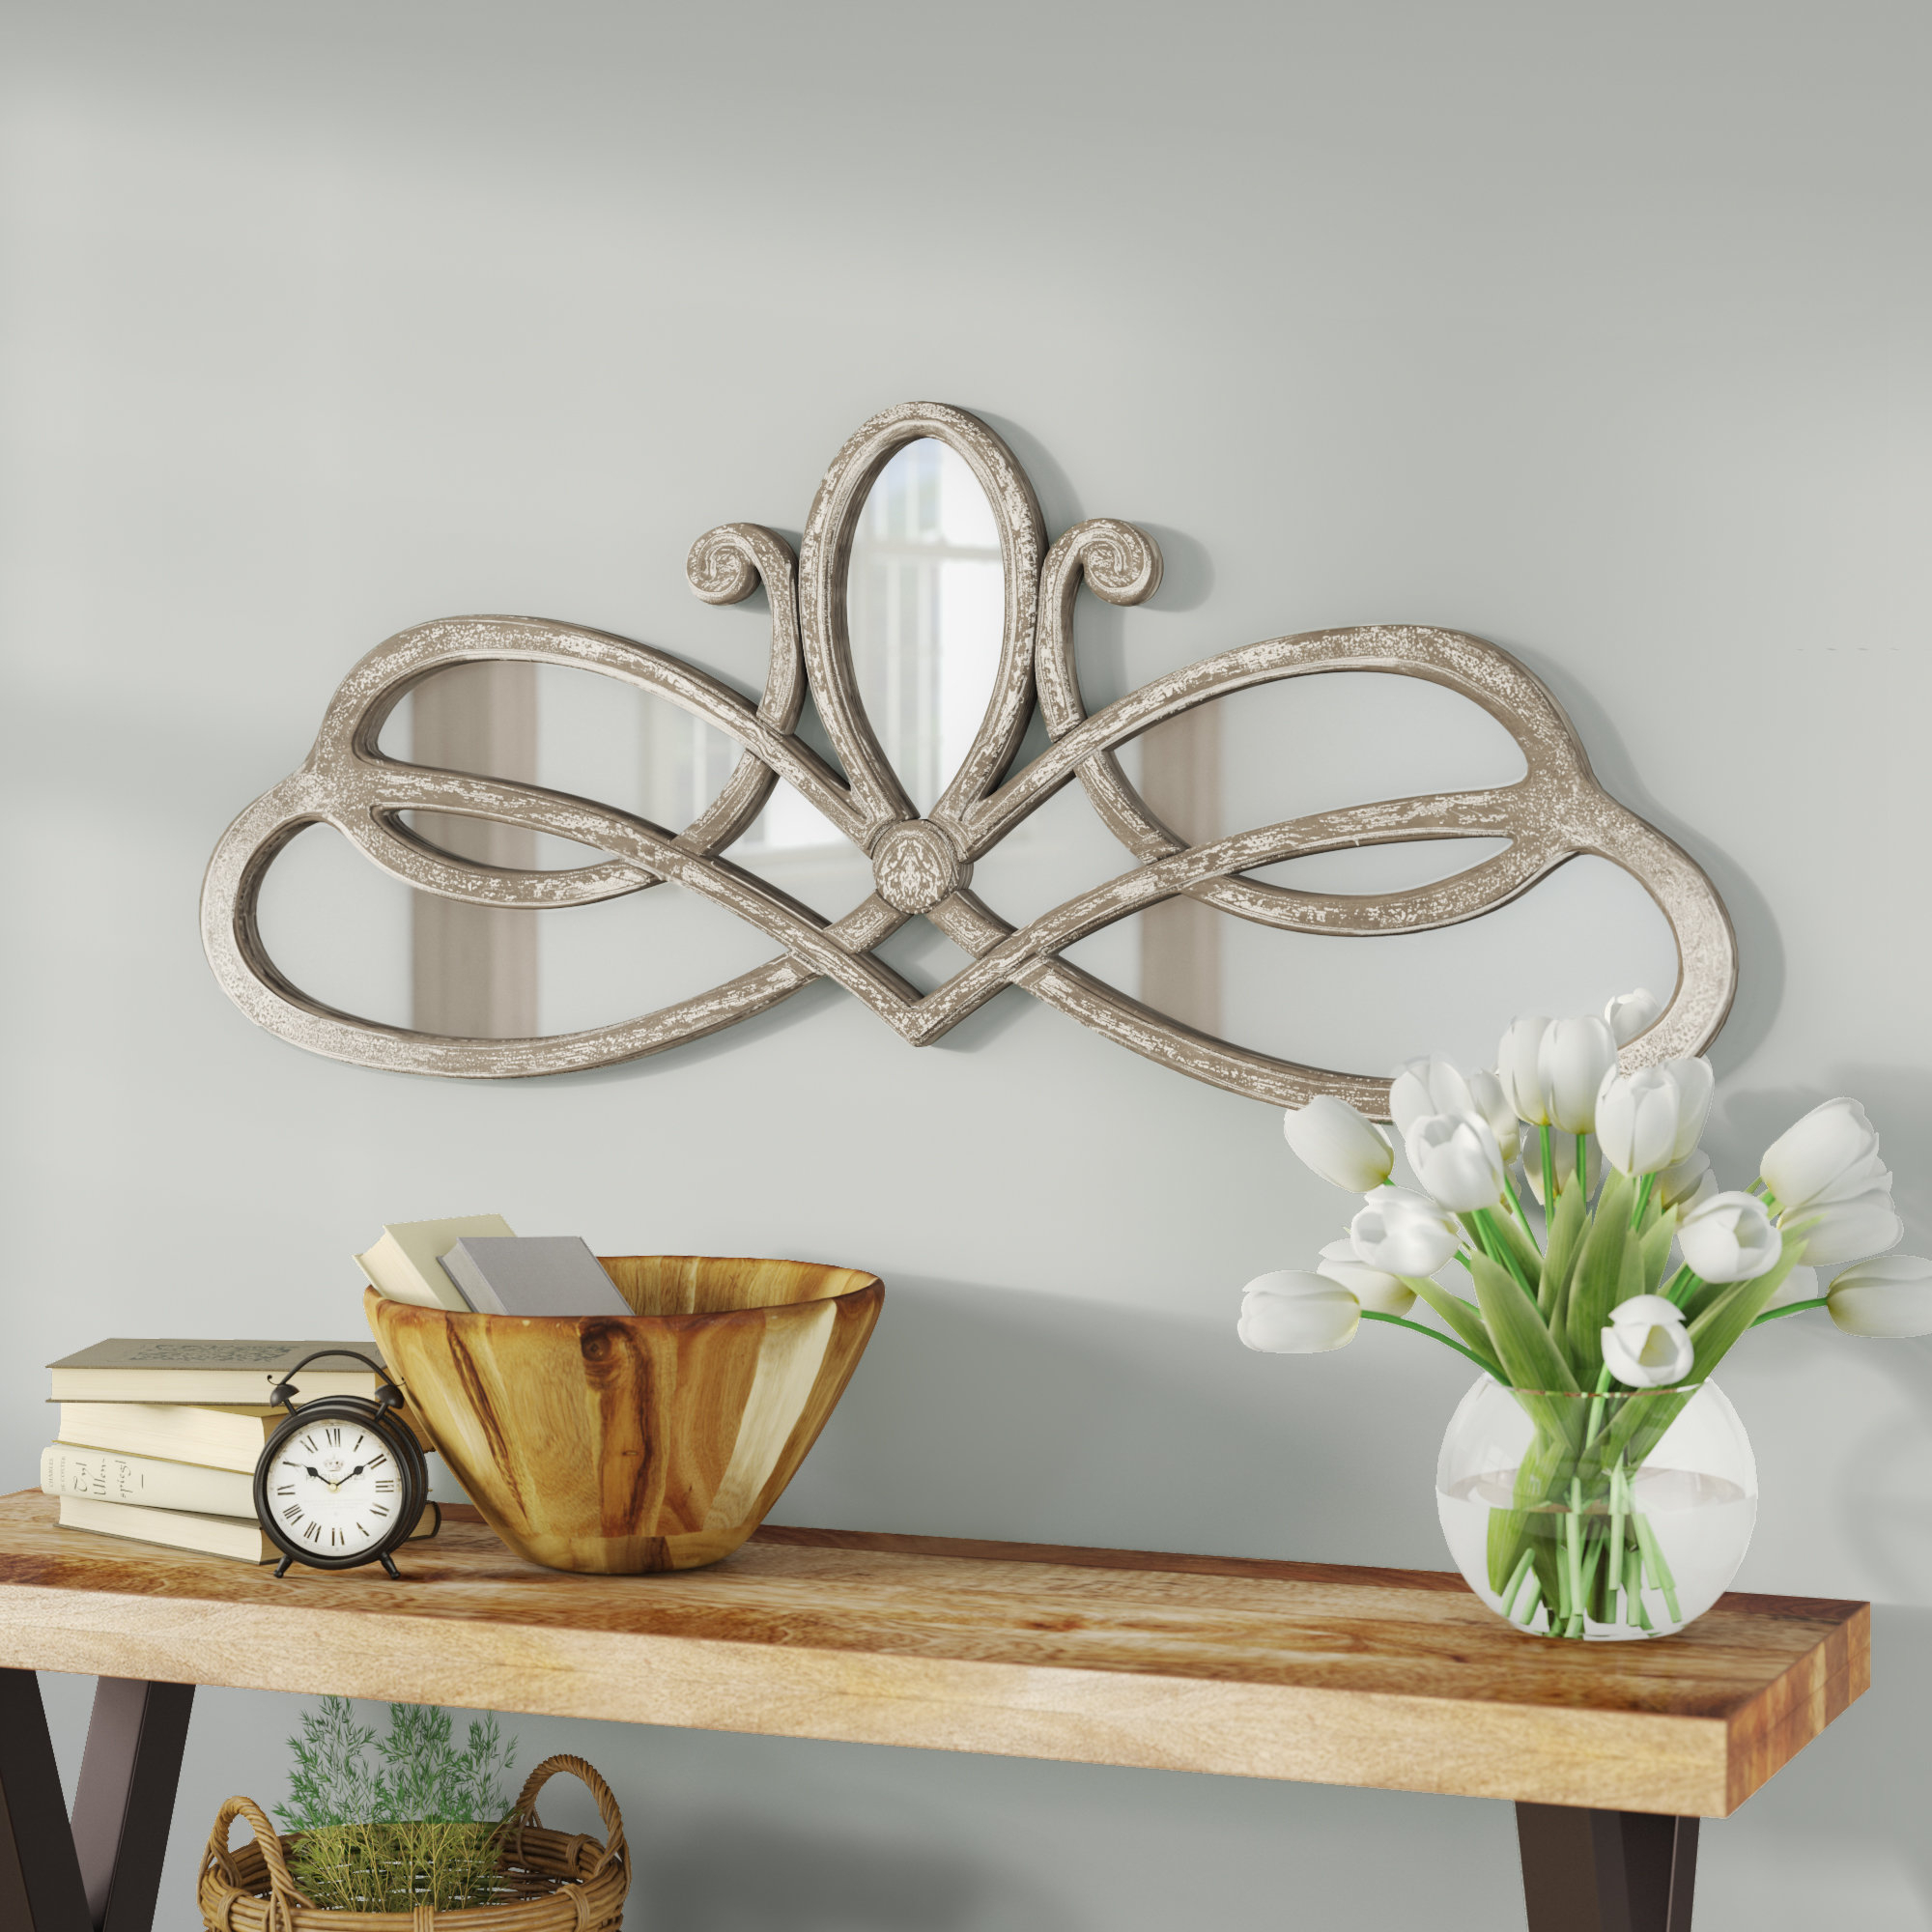 Lark Manor Polen Traditional Wall Mirror With Polen Traditional Wall Mirrors (View 3 of 20)